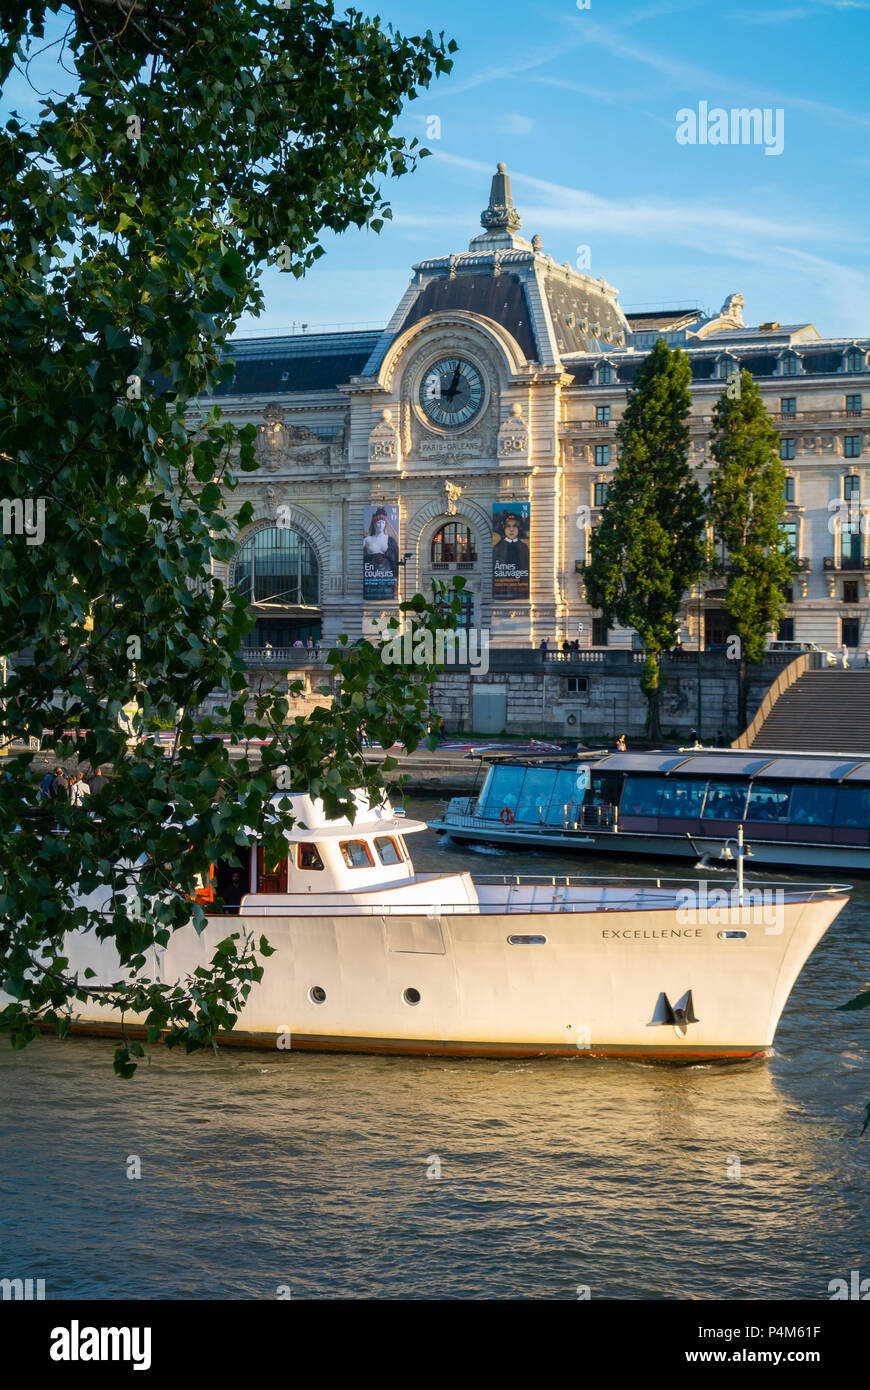 Tourist boat cruising on the Seine river with view of Orsay museum, Paris, IDF, France - Stock Image